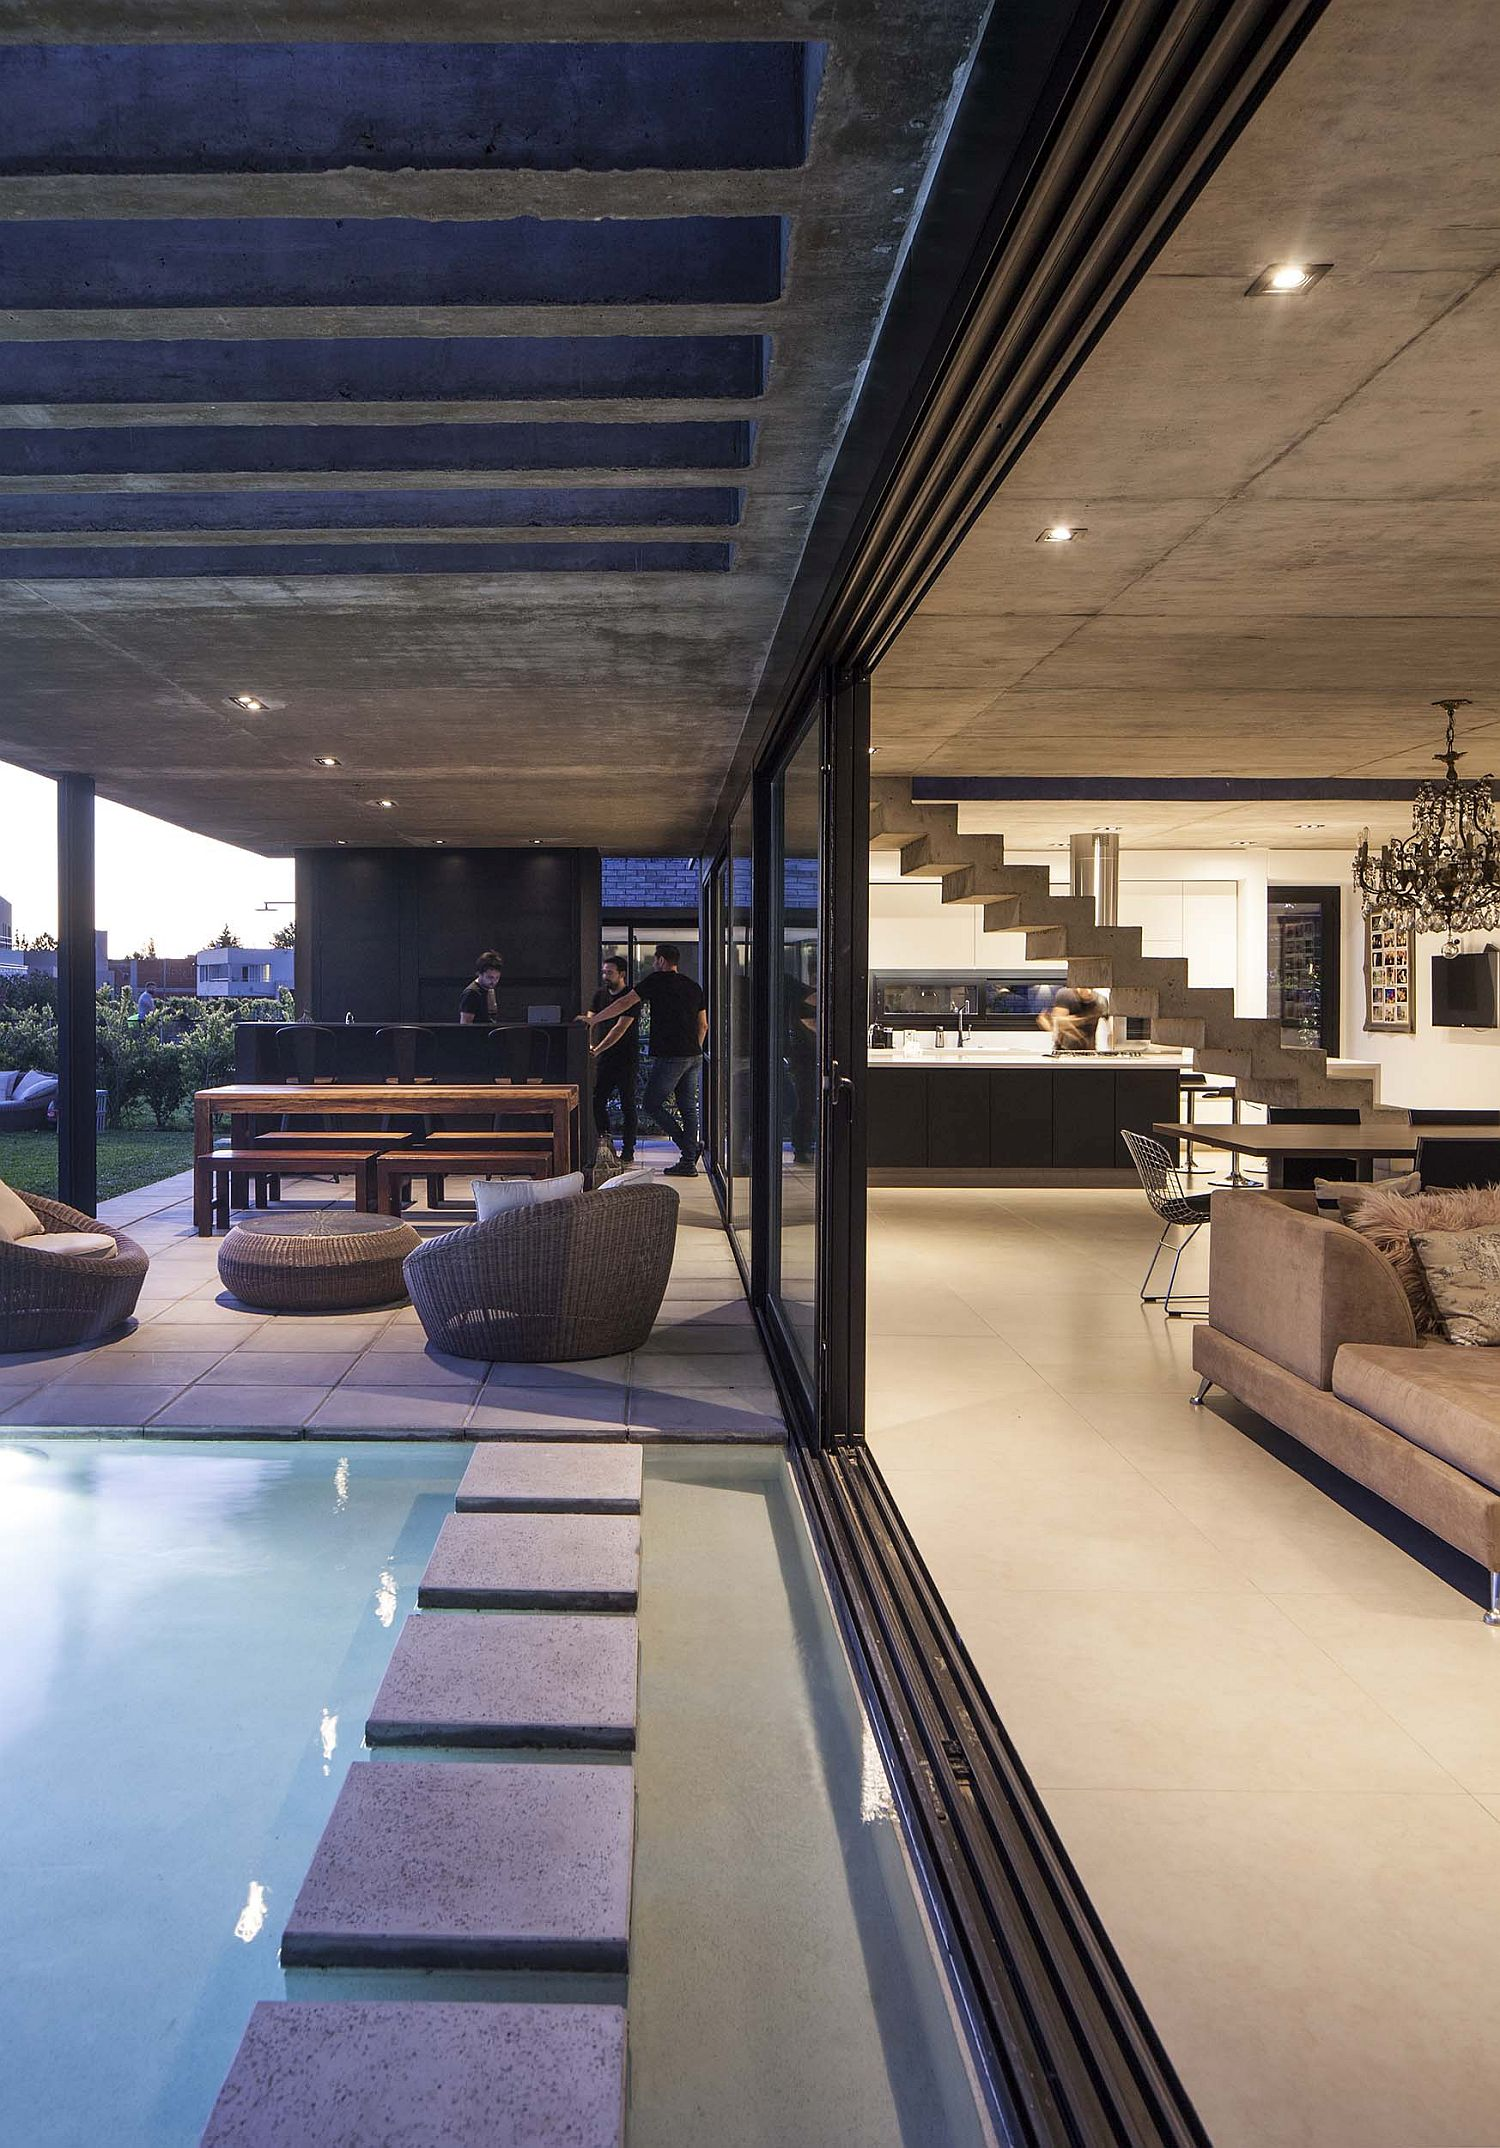 Sliding-glass-doors-connect-the-spacious-living-area-with-the-pool-and-the-al-fresco-dining-71676